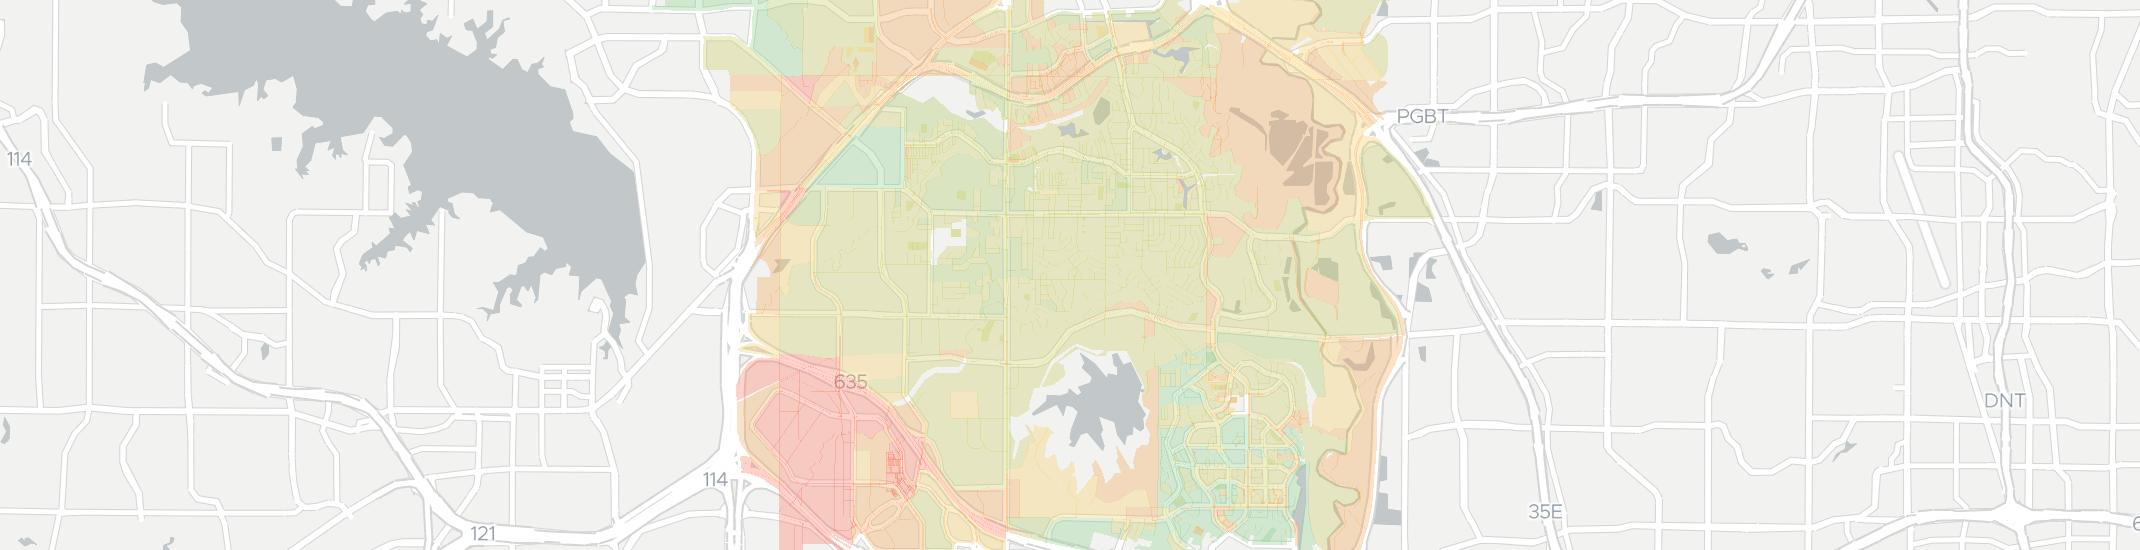 Coppell Tx Zip Code Map.Internet Providers In Coppell Compare 19 Providers